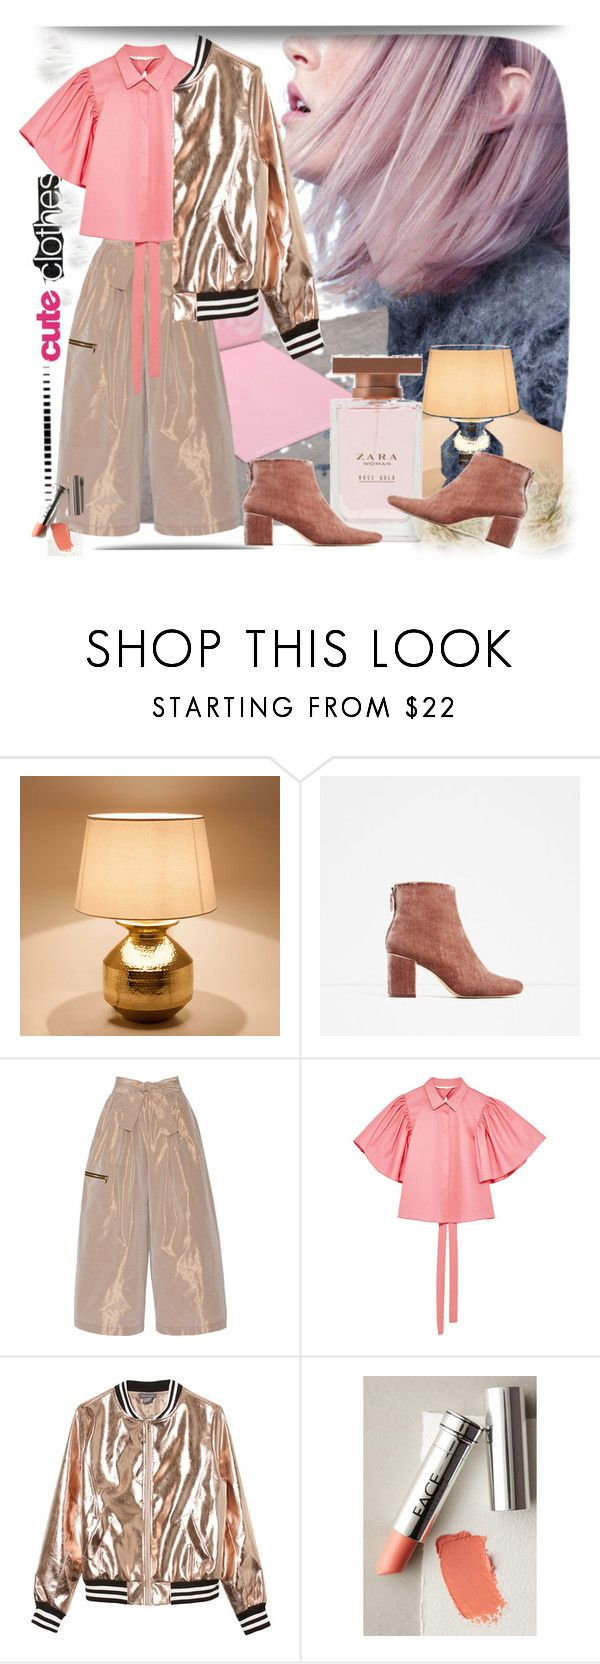 """Untitled #1490"" by hannah353 ❤ liked on Polyvore featuring Zara Home, Tome, Sans Souci, FACE Stockholm and J Brand"